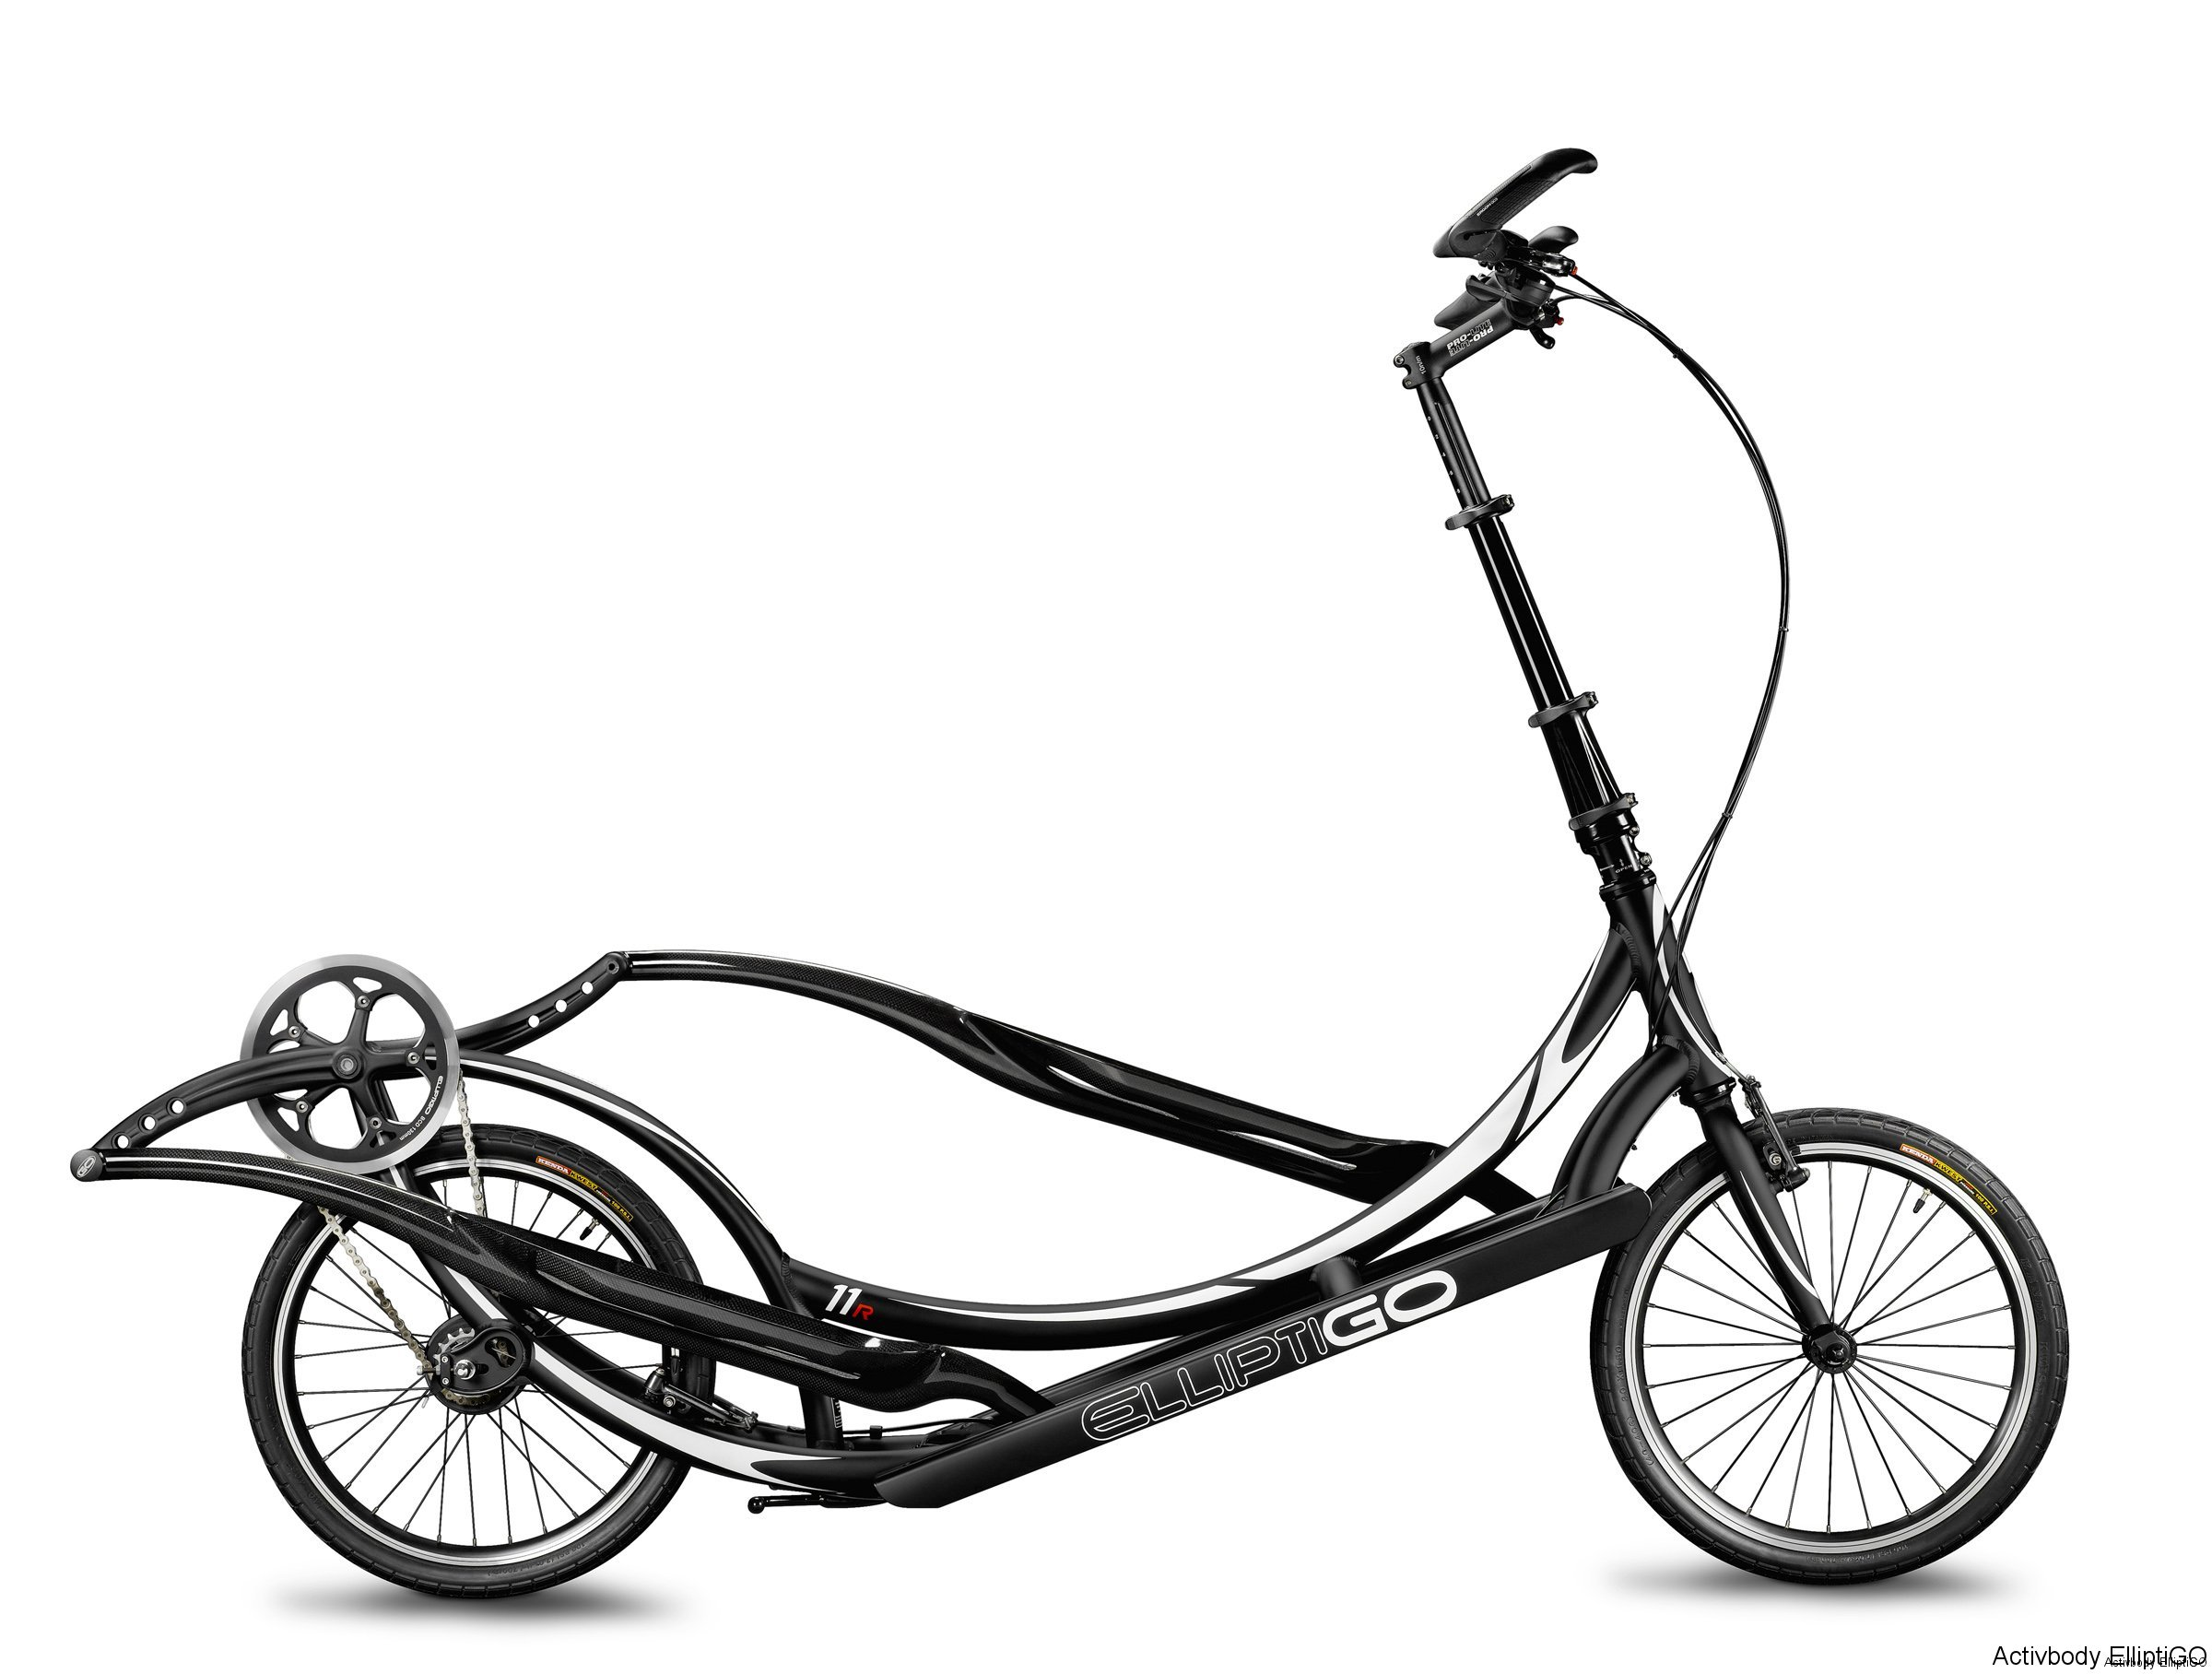 elliptigo location vente sav la r volution du sport outdoor. Black Bedroom Furniture Sets. Home Design Ideas